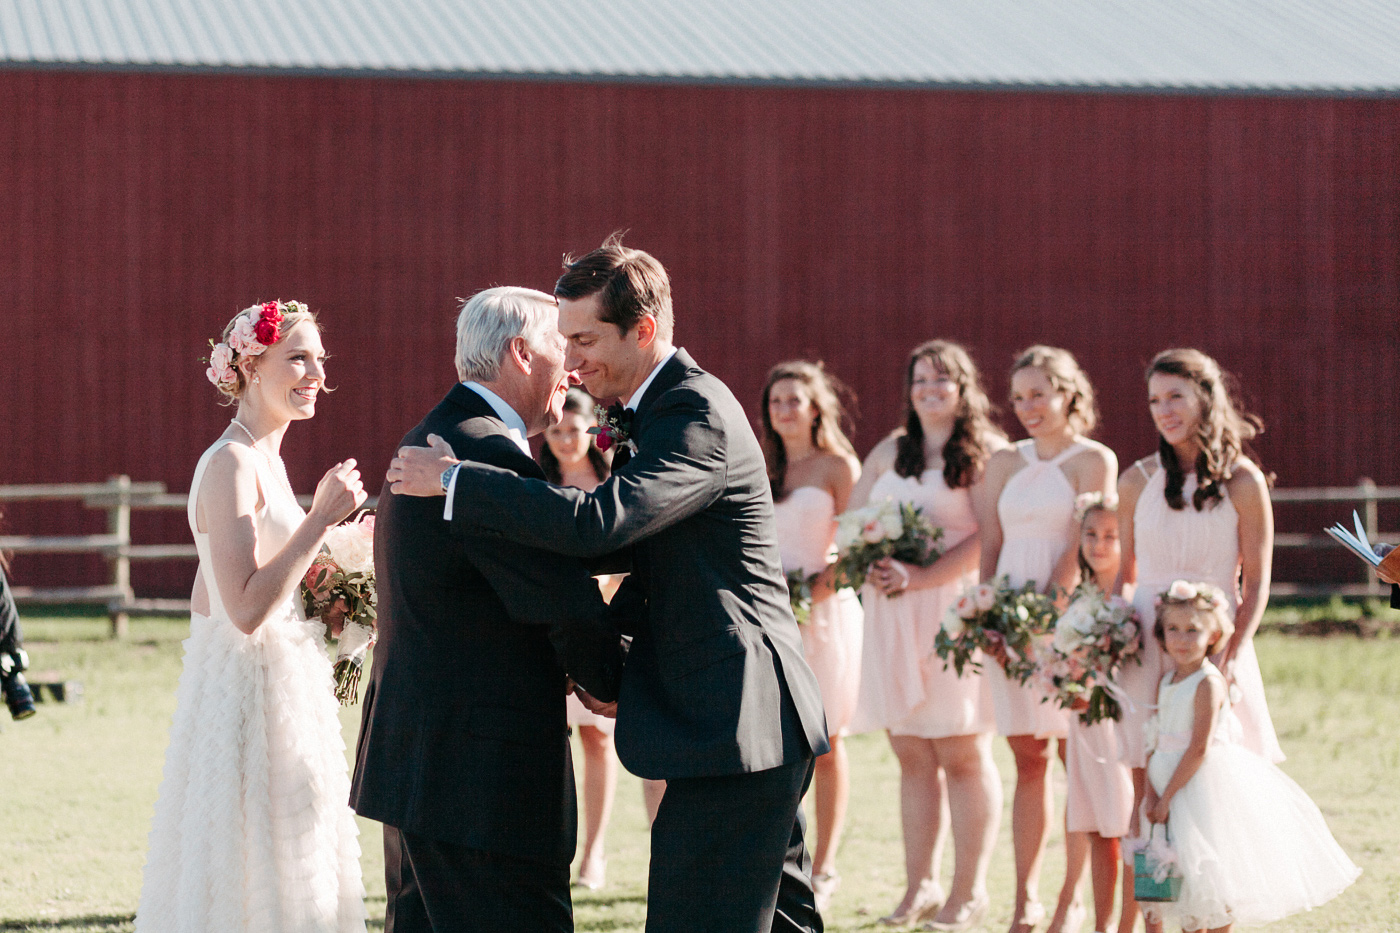 141-wiens-ranch-wedding-ceremony.jpg